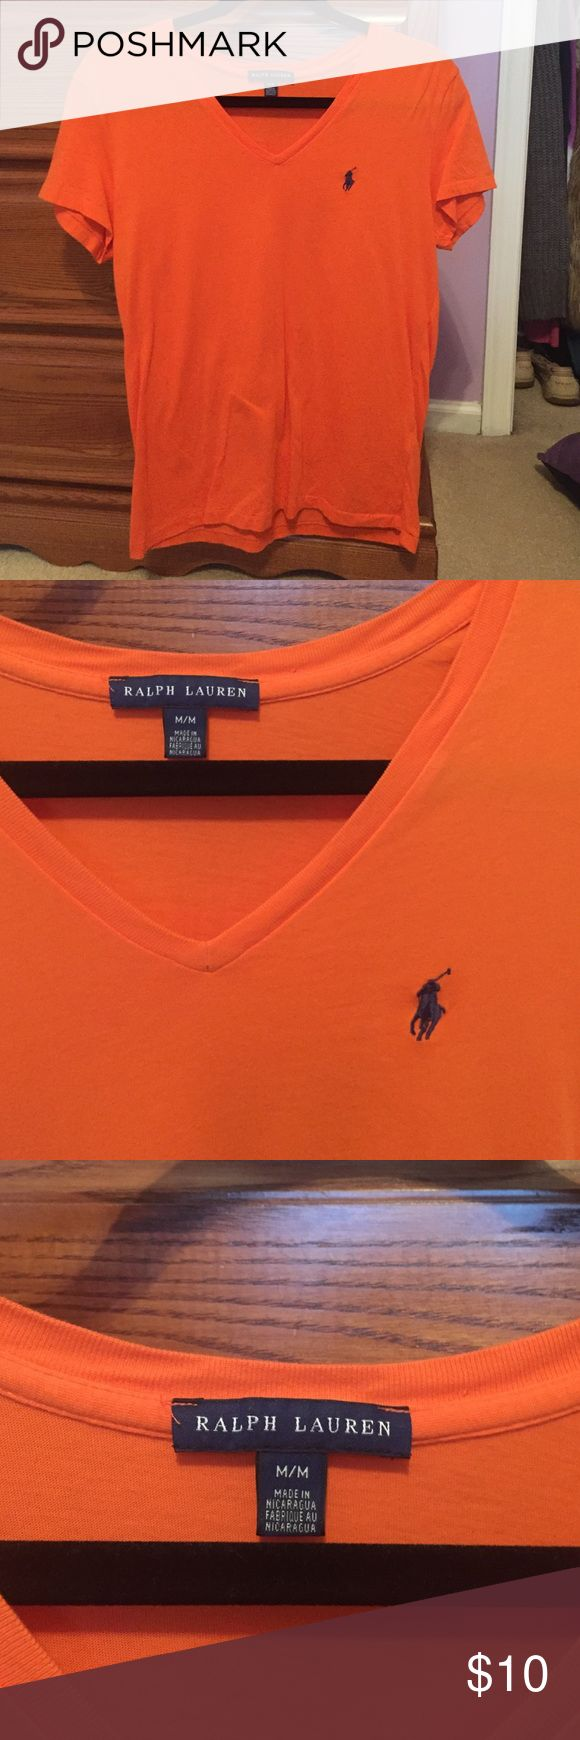 Orange Ralph Lauren POLO V-Neck T-Shirt Like New Ralph Lauren POLO orange V-neck t-shirt. Only worn once. No holes/rips/stains. Navy blue POLO symbol on front left side. Women's Size medium. Polo by Ralph Lauren Tops Tees - Short Sleeve